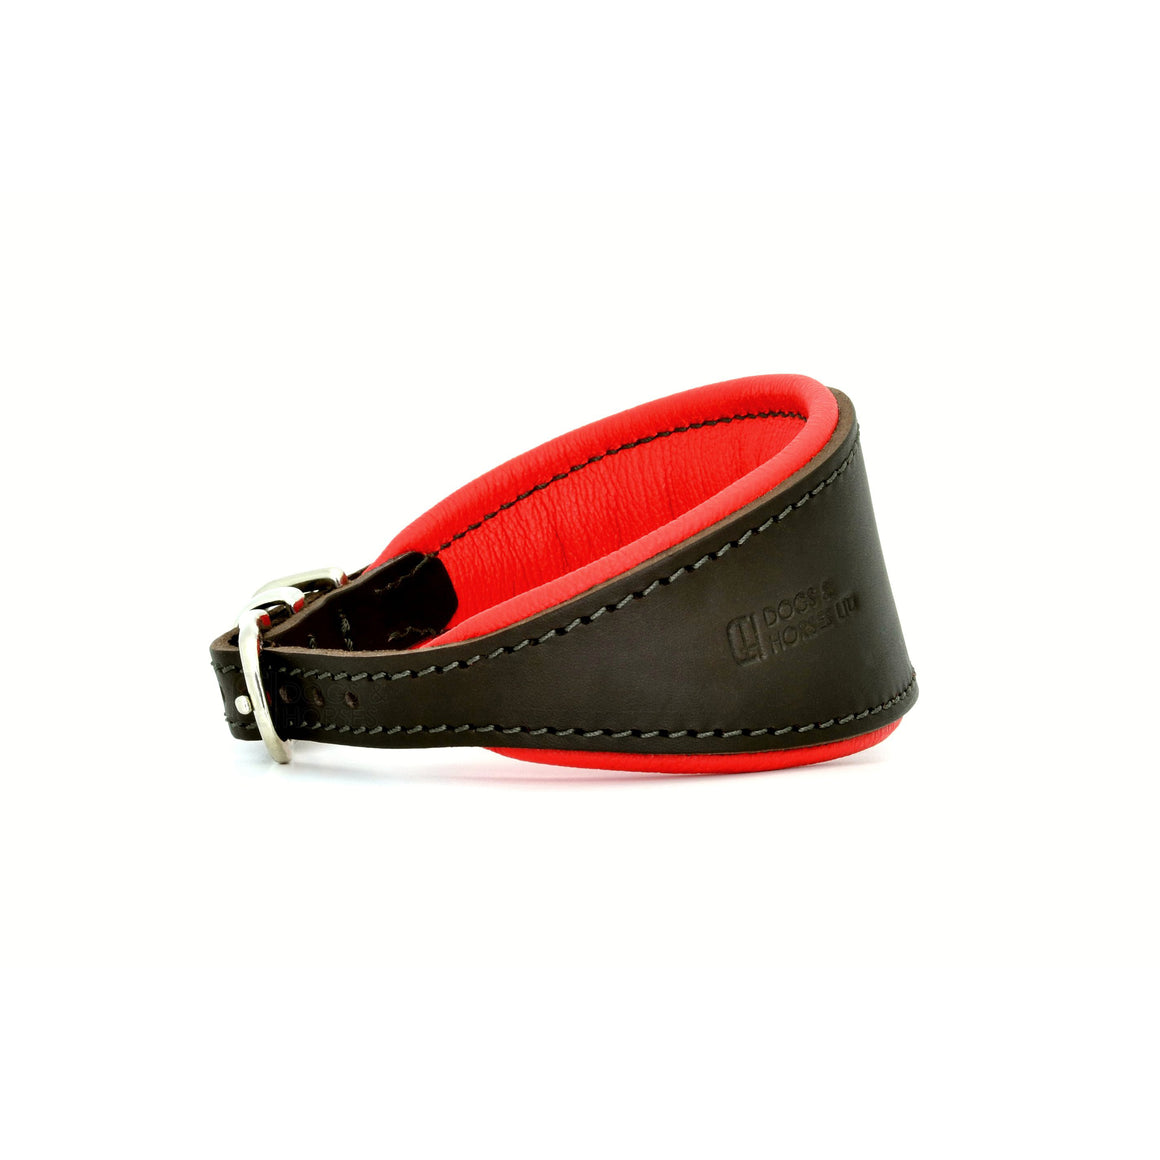 Padded Hound leather dog collar brown, red and silver. Handmade by (Dogs&Horses) D&H London. Luxury leather goods. Suitable for Whippets, Greyhounds, Lurchers